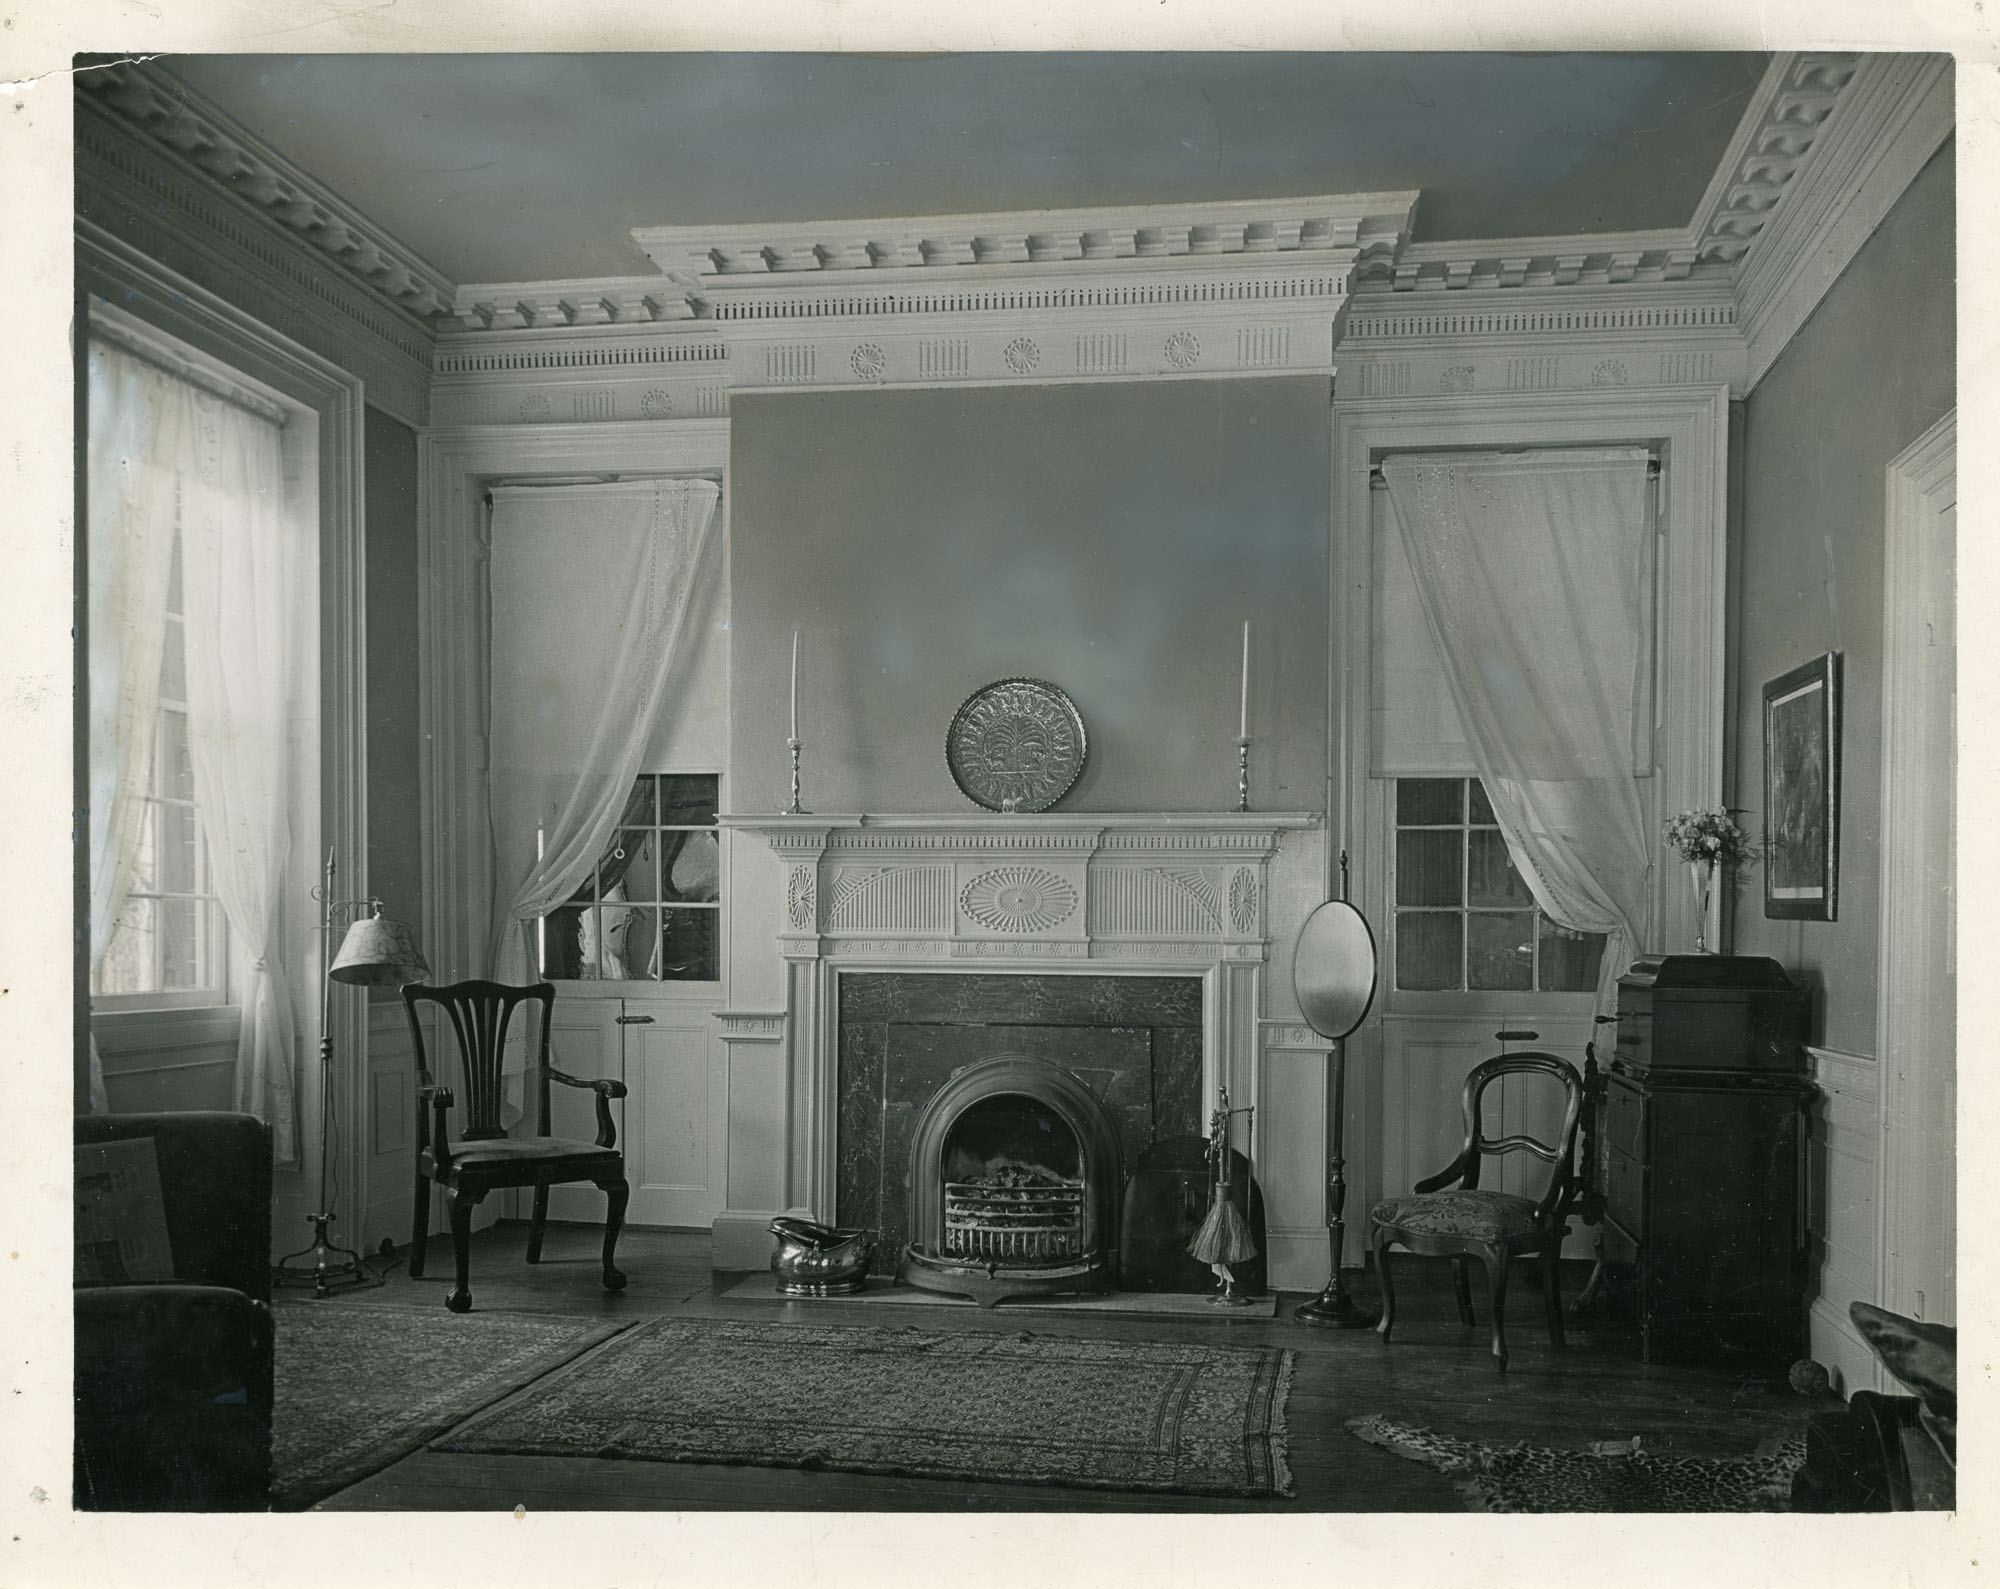 Brewton-Salter House, West Wall, Second Floor Drawing Room